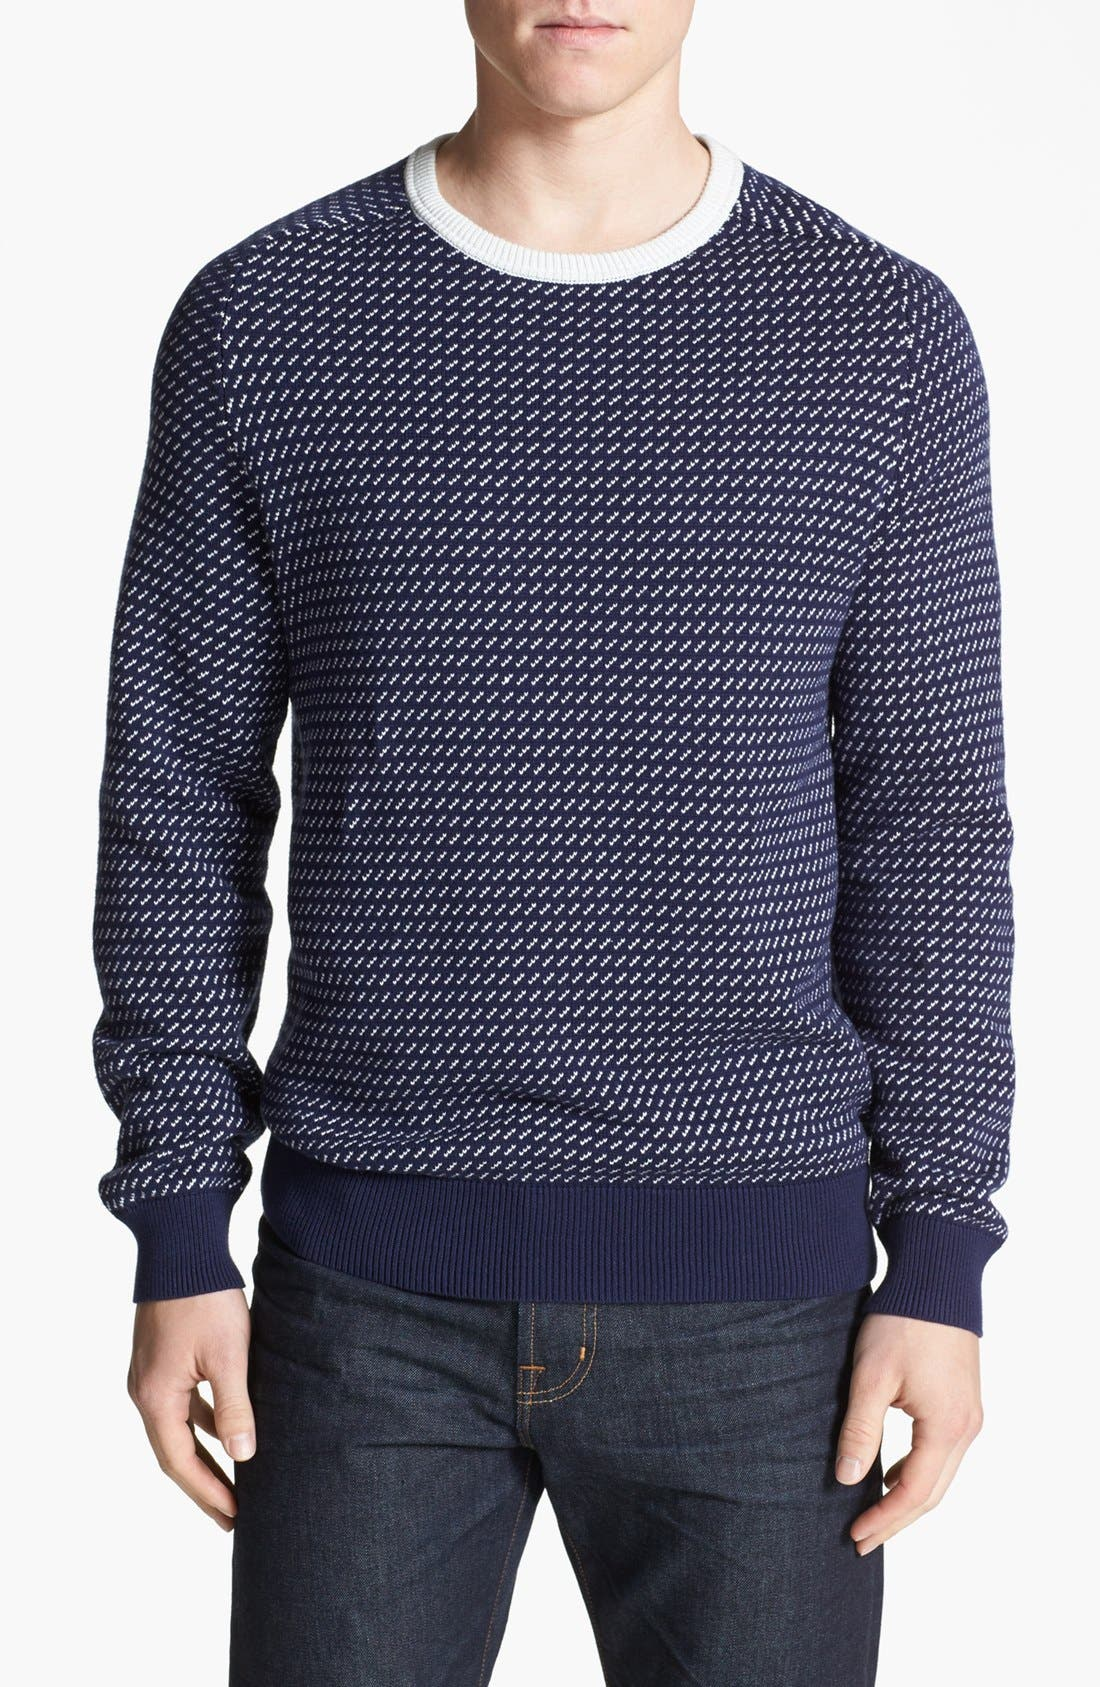 Alternate Image 1 Selected - French Connection 'Bowline' Sweater